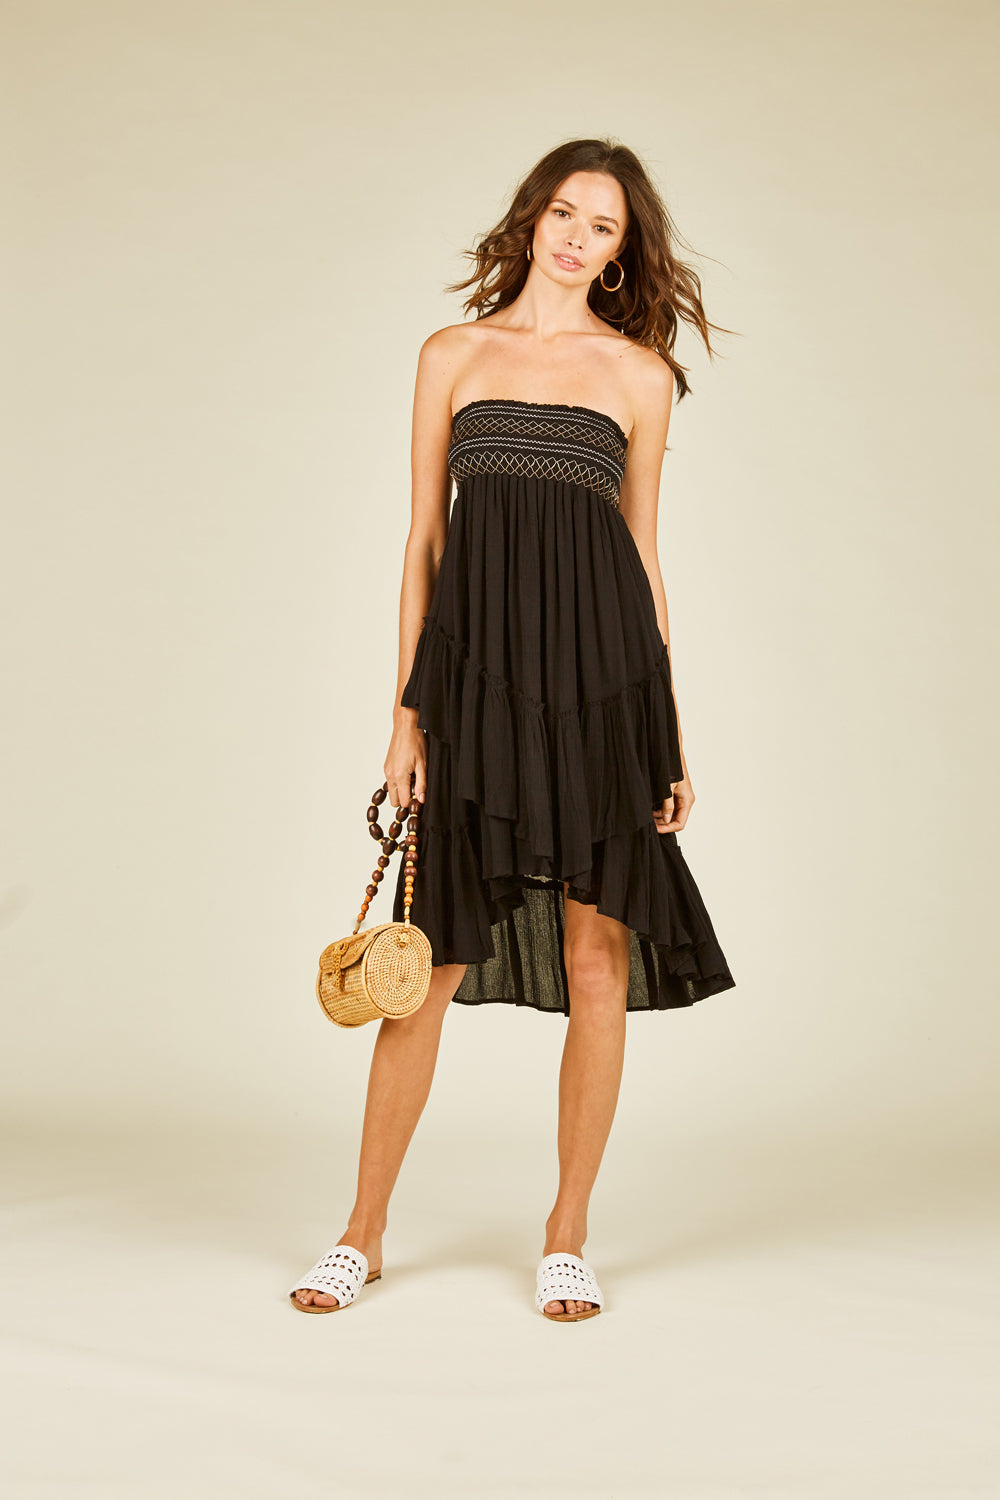 Ruffle Convertible Skirt to Dress